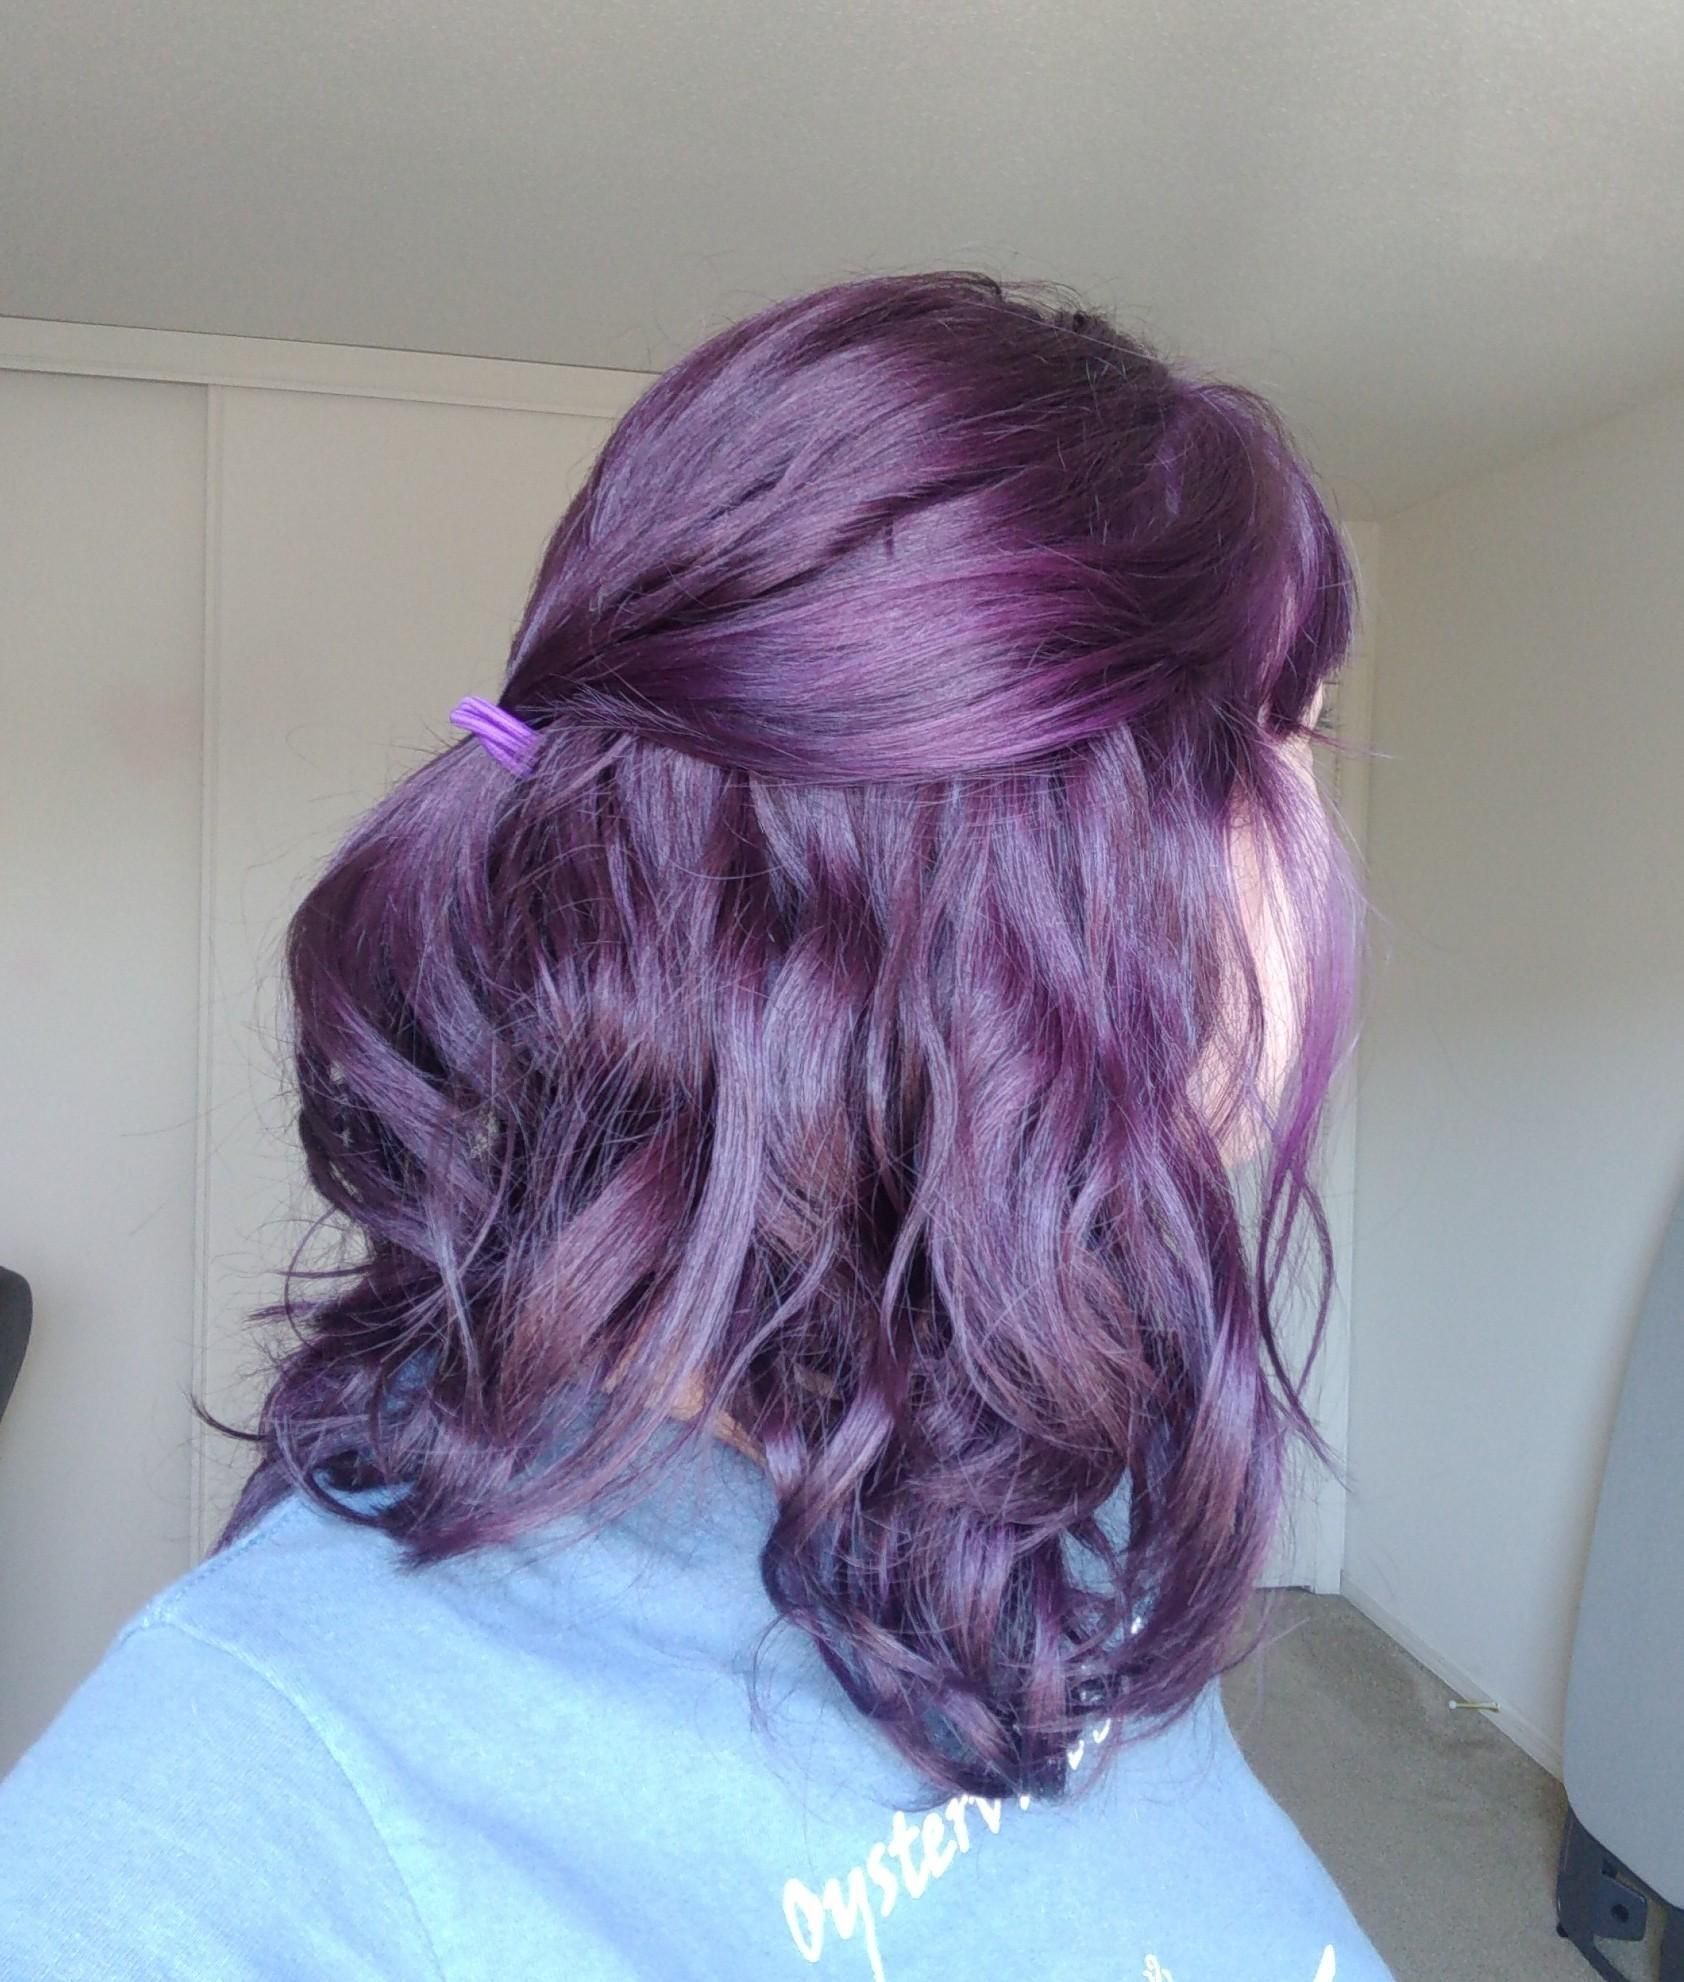 Arctic Fox Purple Rain Over Medium Brown Hair Living Some Grape Flavored Dreams Over Here In 2020 Medium Brown Hair Purple Brown Hair Fox Hair Dye